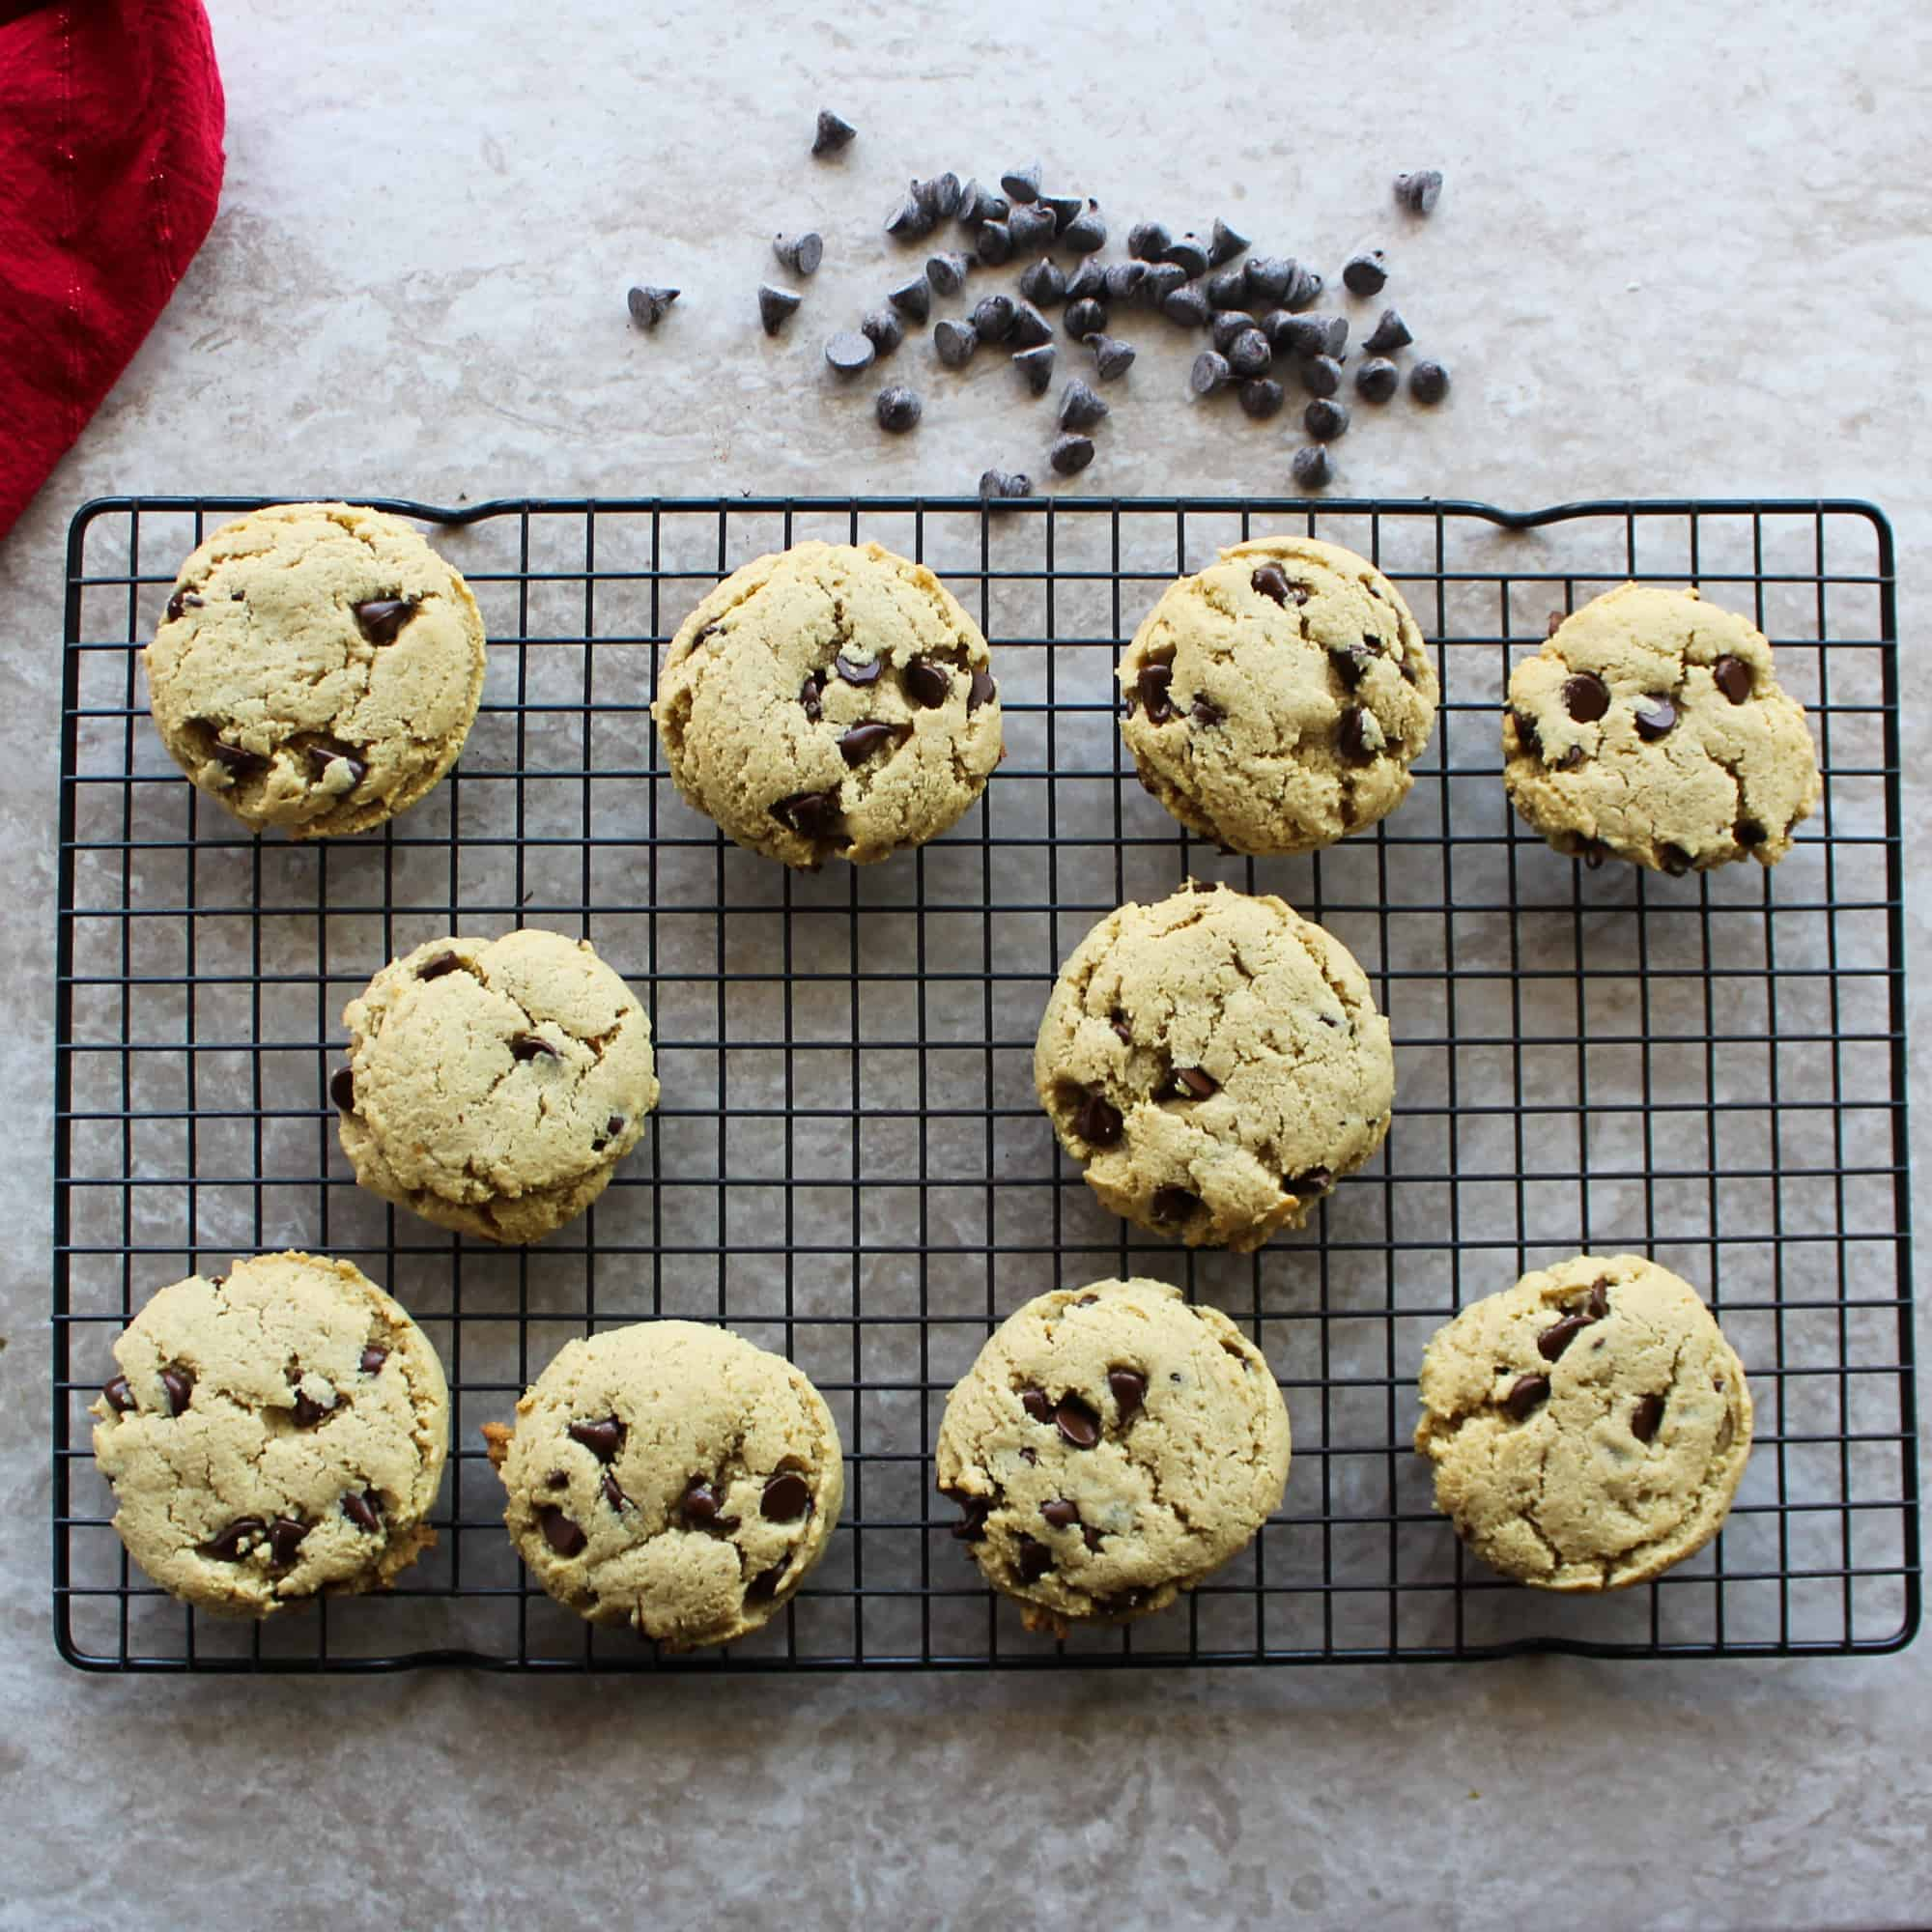 cool the cookies